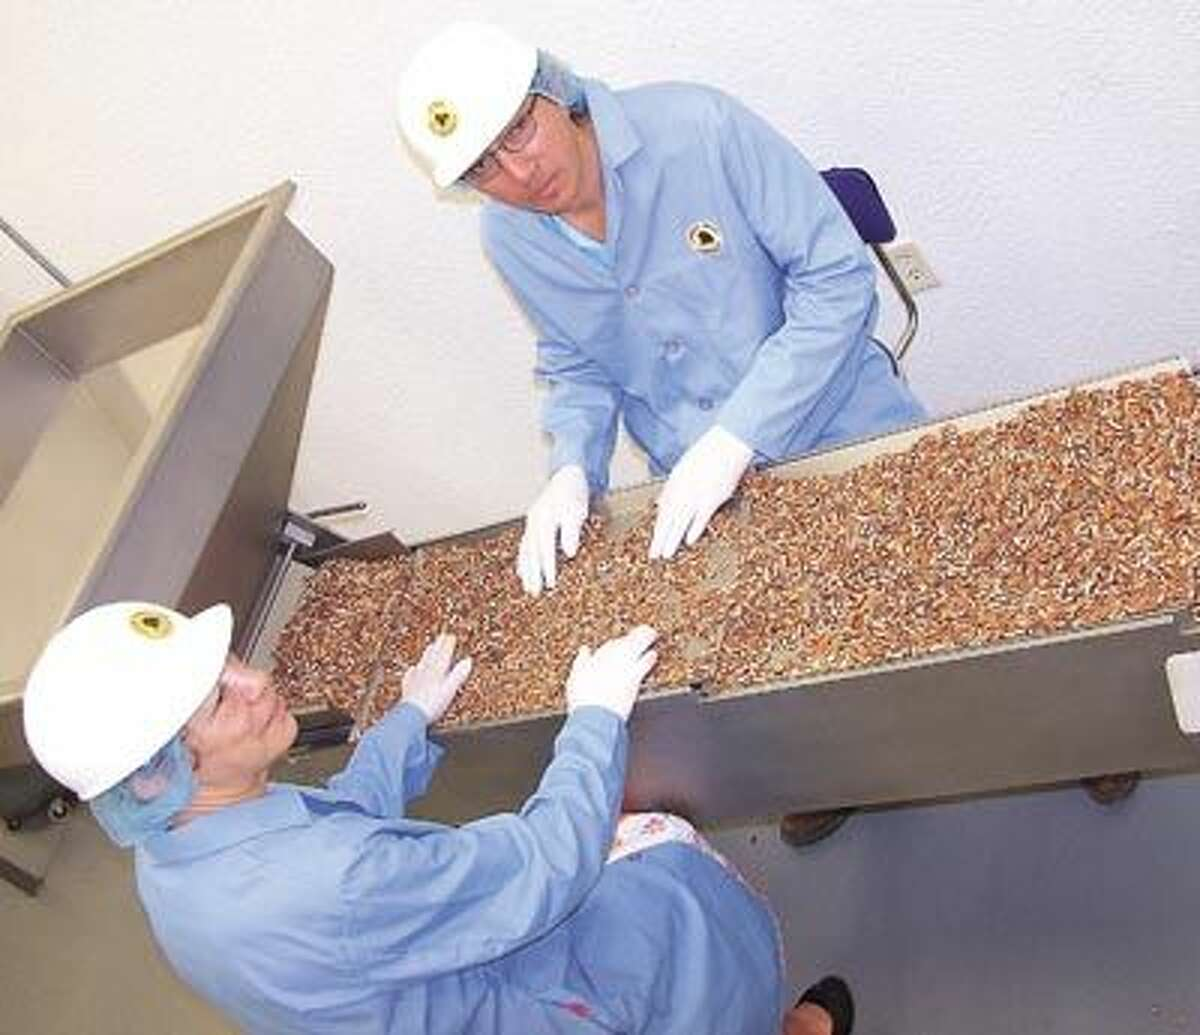 Family-owned Pecan Tree Partners is the clean, friendly place for pecan processing and gifts. Call them at (432) 685-3232.